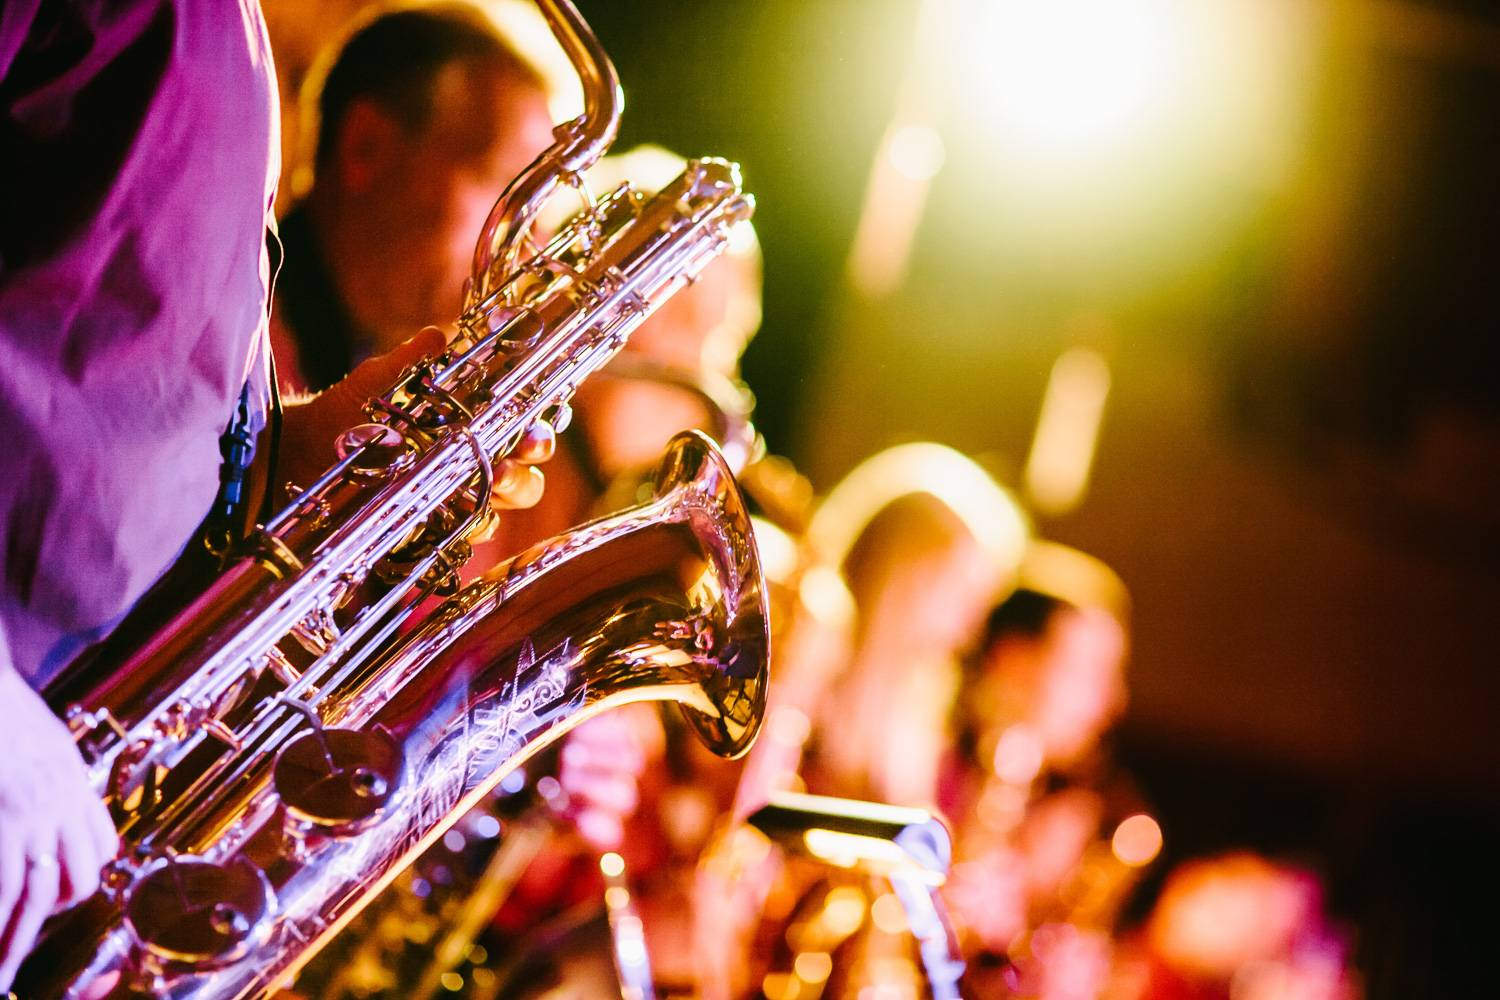 Image of musicians with saxophones playing jazz (Photo Credit: Unsplash)